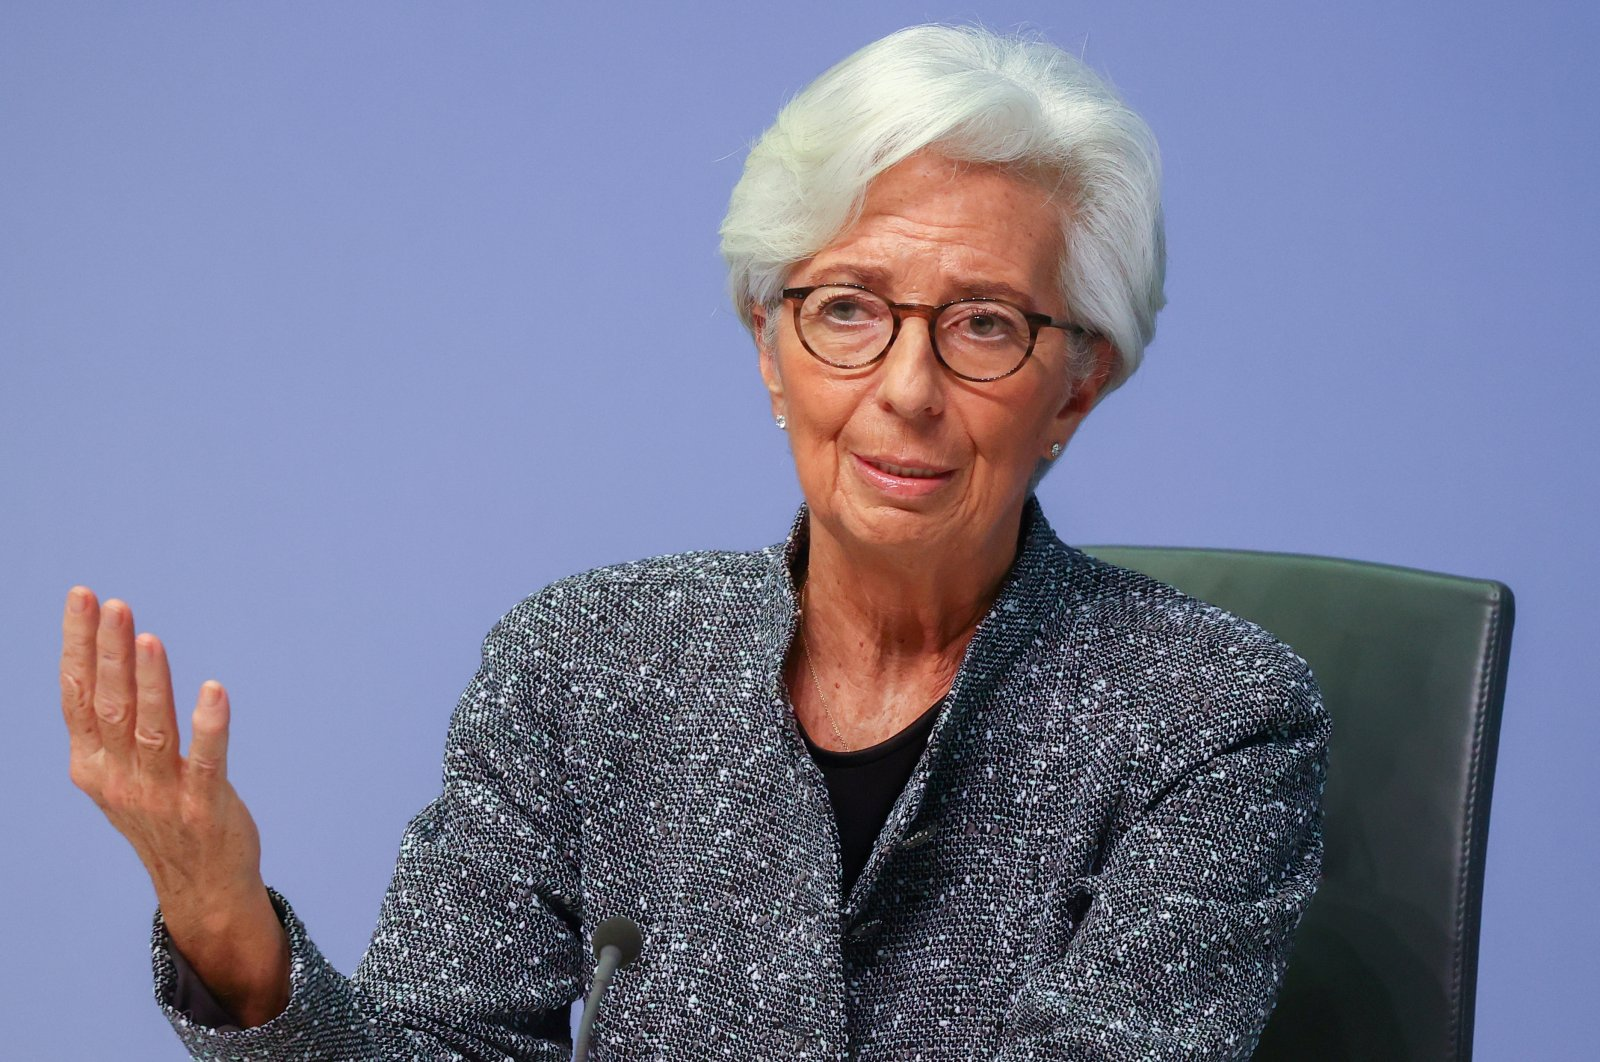 European Central Bank (ECB) President Christine Lagarde gestures as she addresses a news conference on the outcome of the meeting of the Governing Council, in Frankfurt, Germany, March 12, 2020. (Reuters Photo)